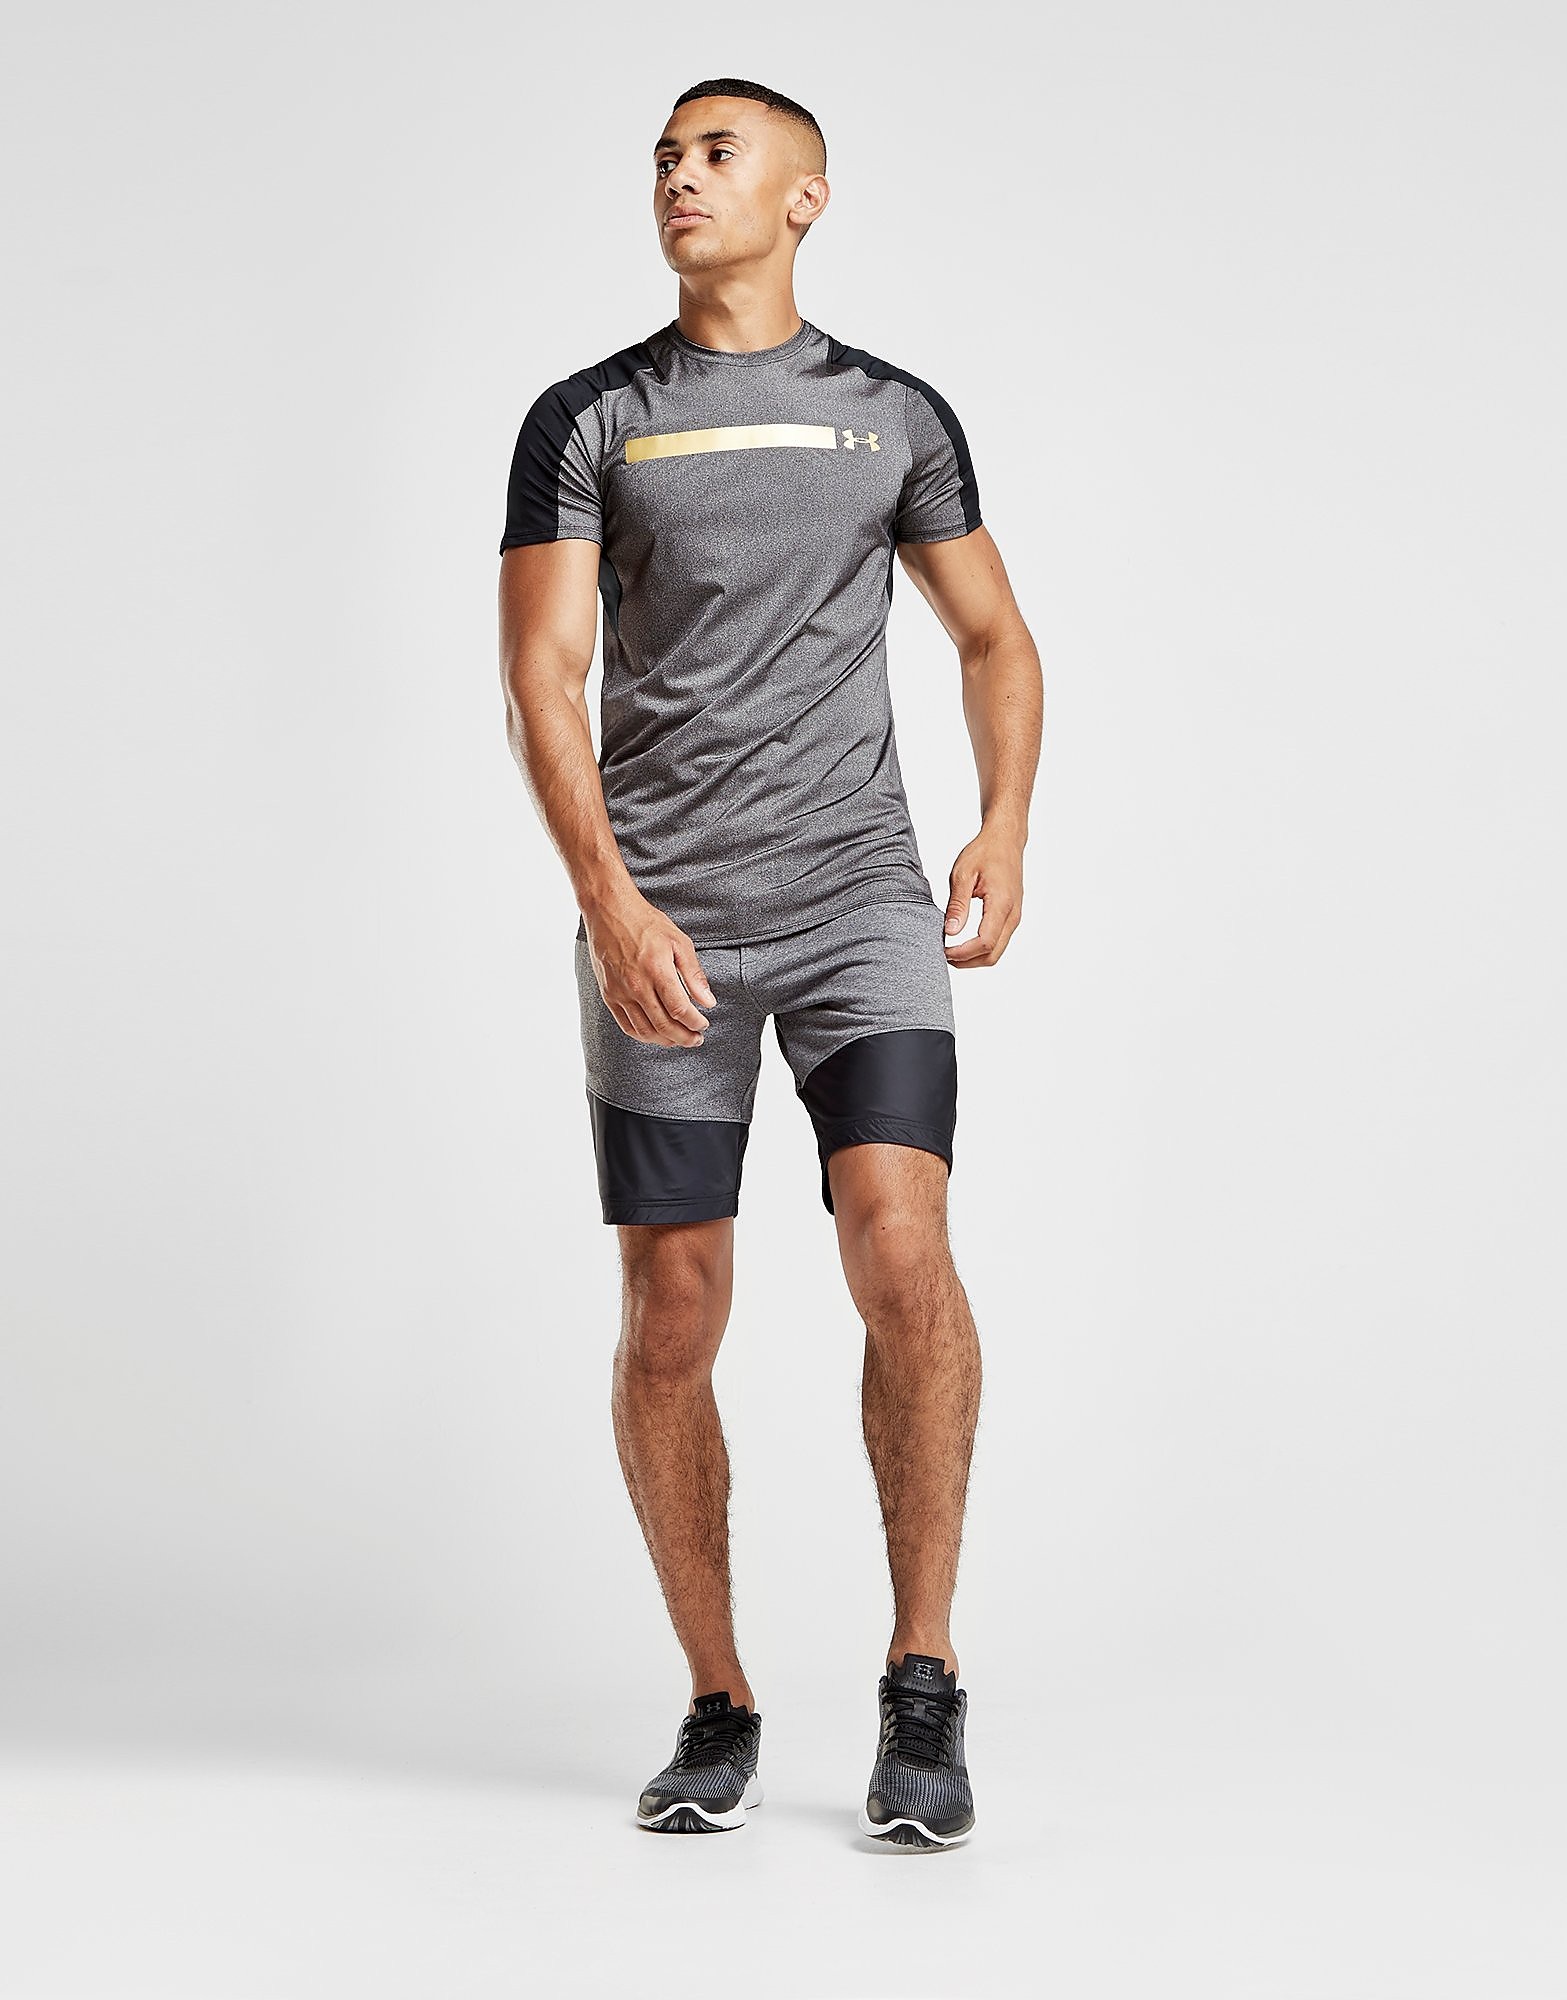 Under Armour Perpetual Fit T-Shirt